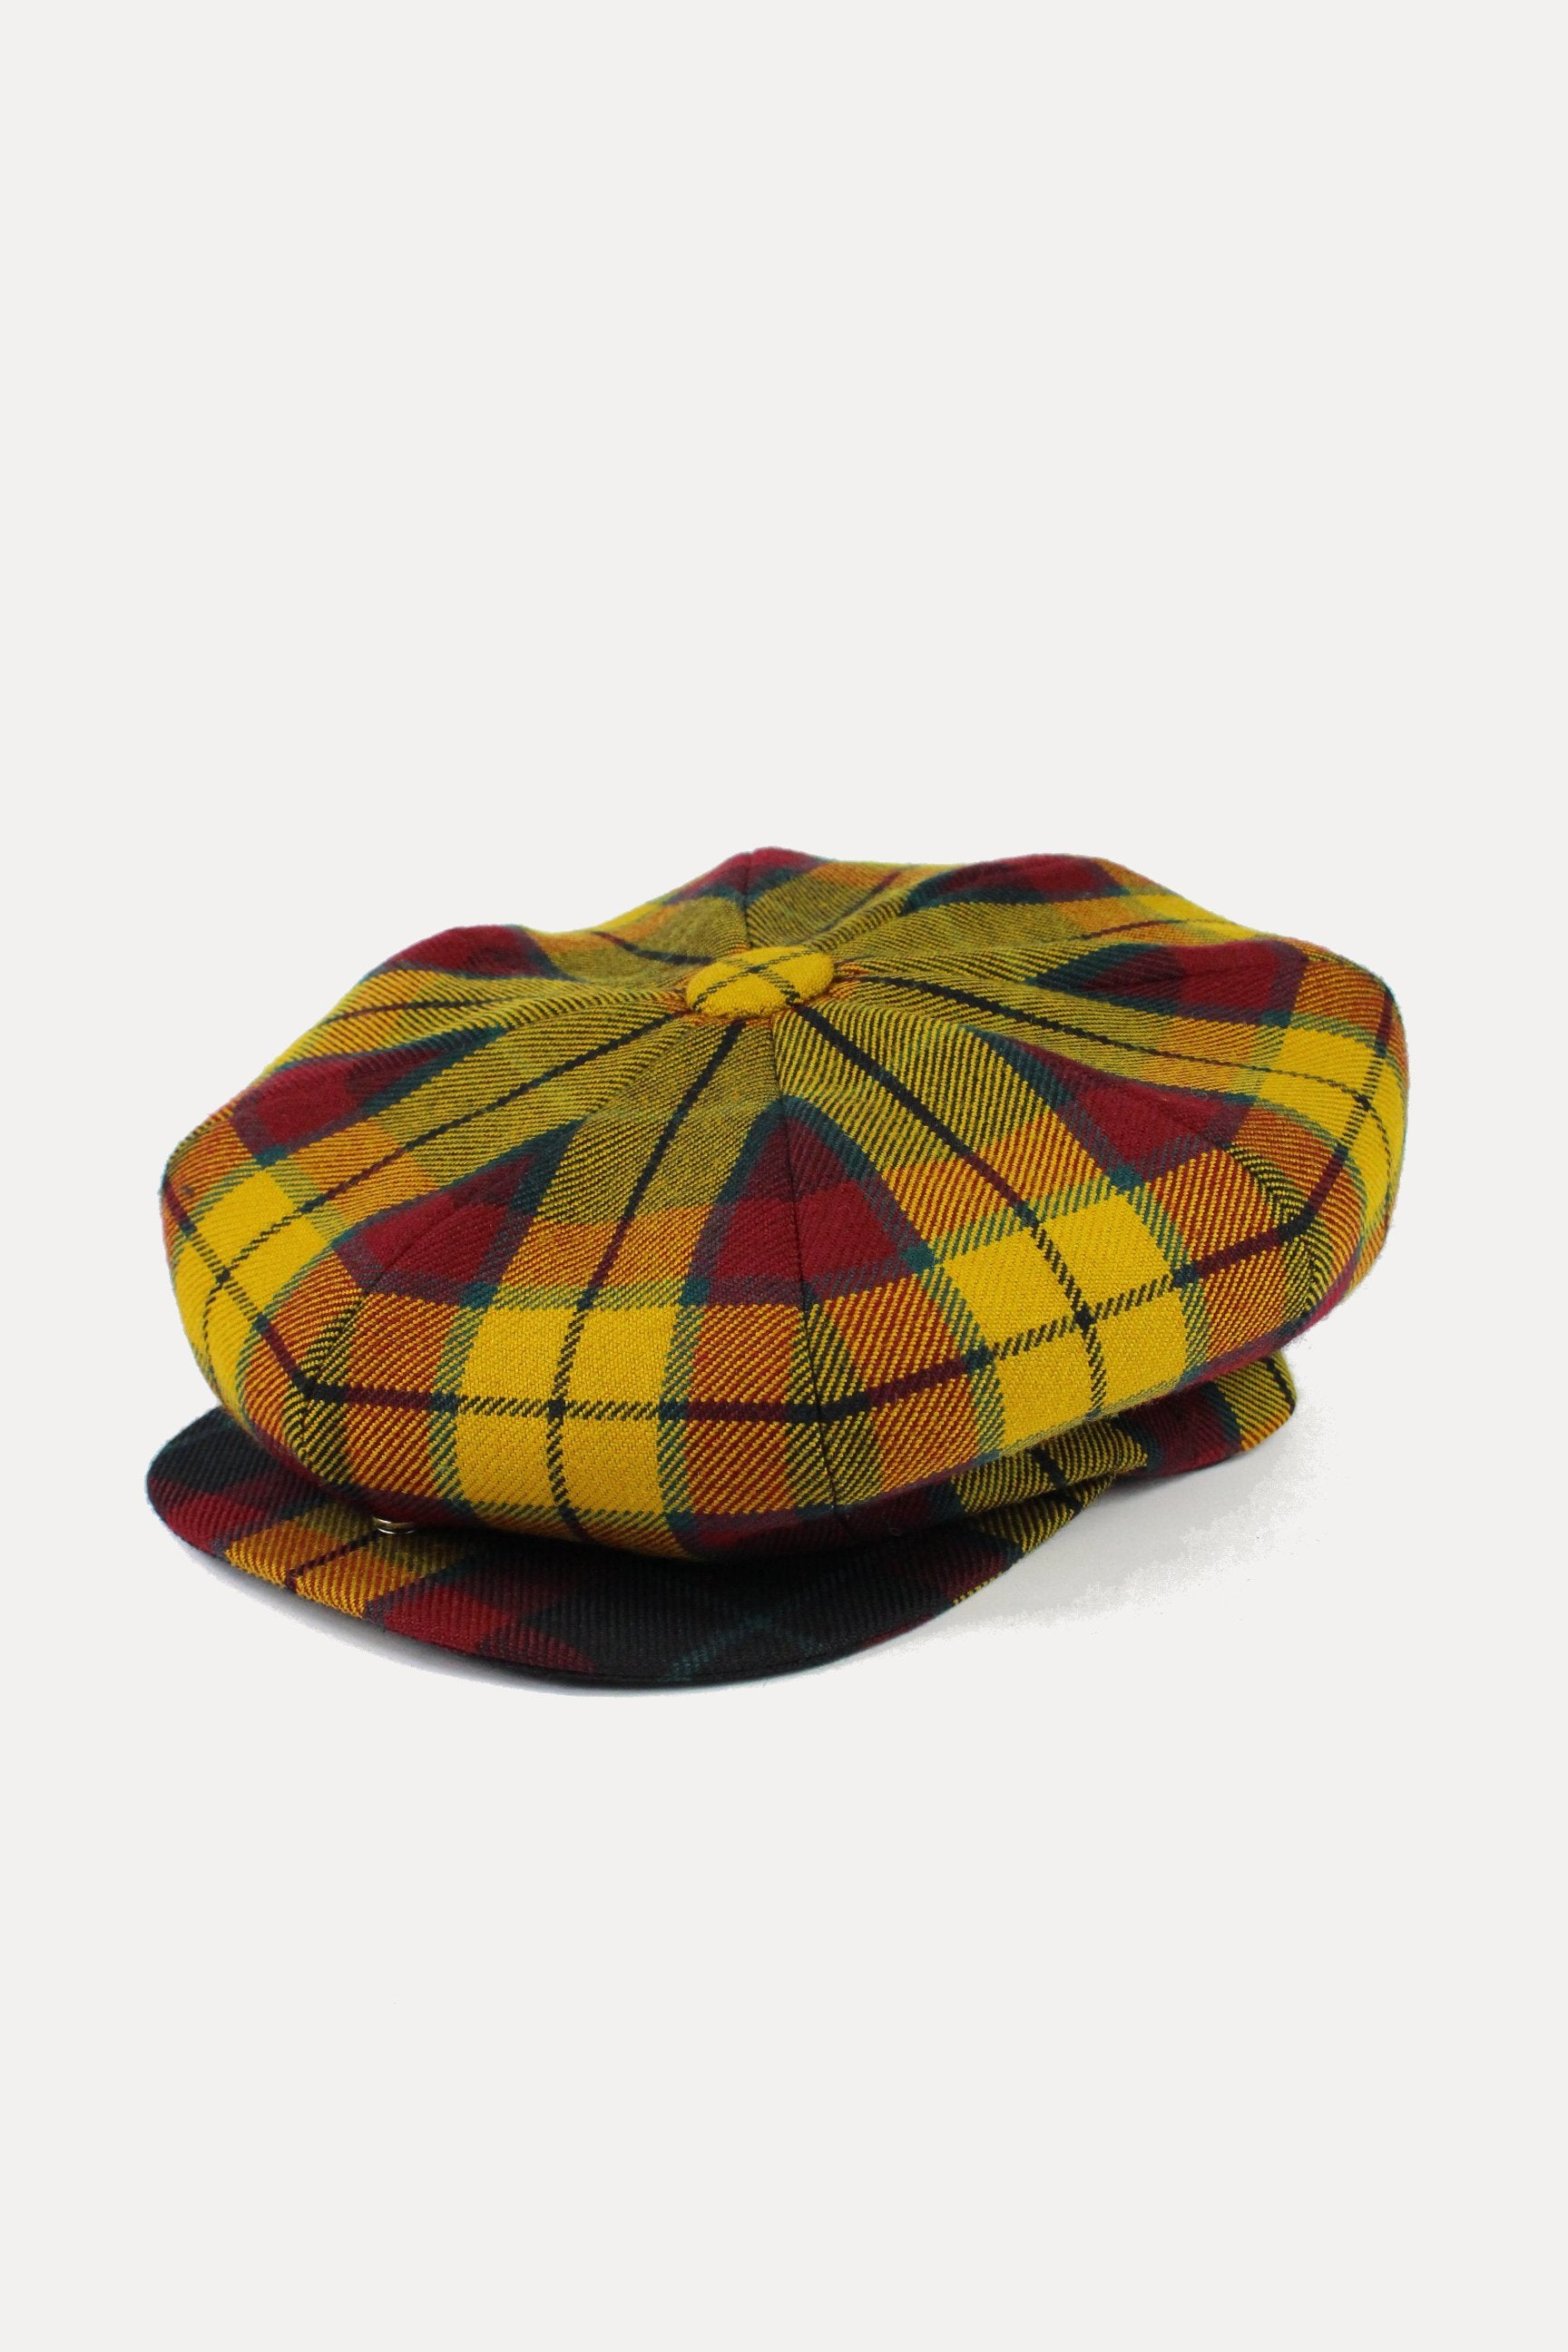 CLYDE - MACMILLAN TARTAN-hats-A Child Of The Jago